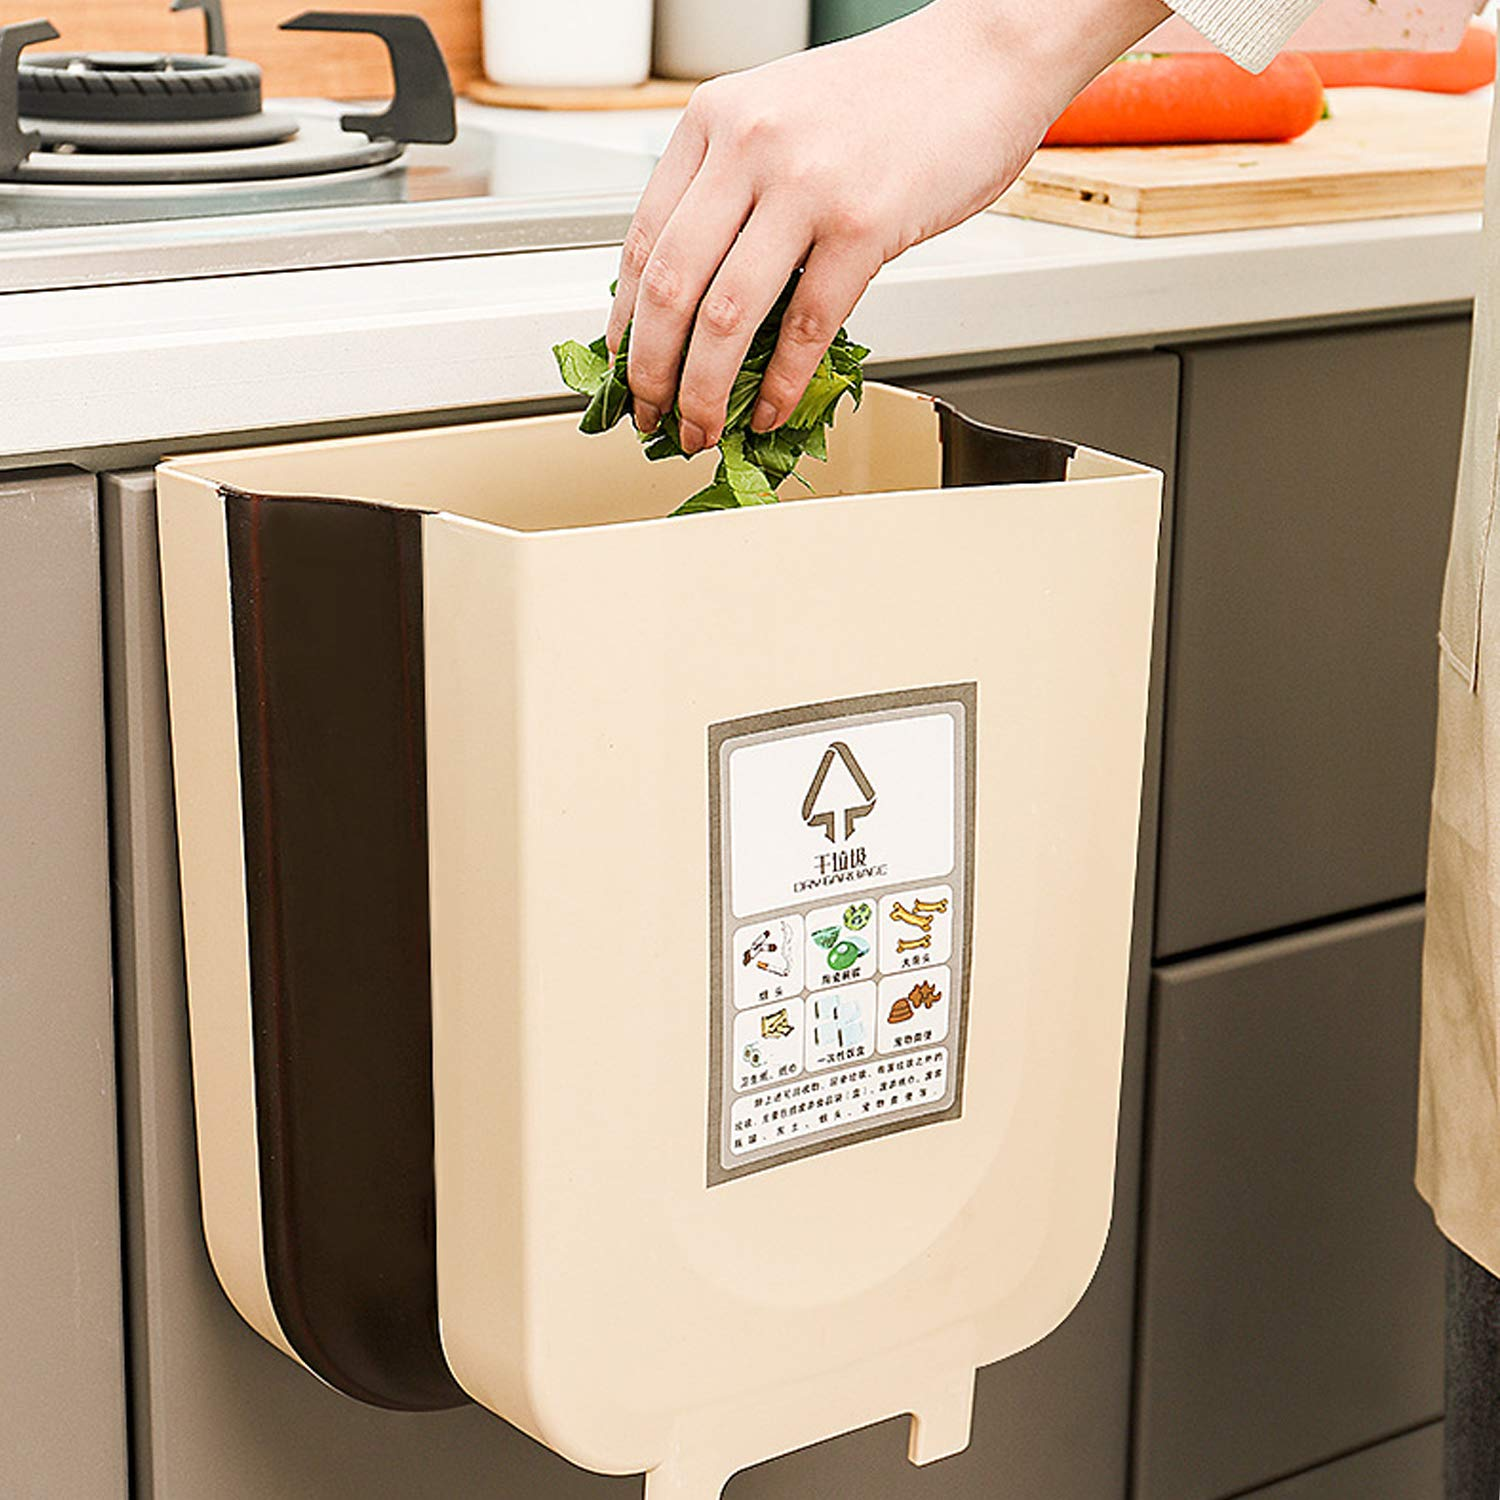 Vapeart Hanging Trash Can for Kitchen Cabinet Door, Collapsible Trash Bin Small Compact Garbage Can Attached to Cabinet Door Kitchen Drawer Bedroom Dorm Room Car Waste Bin-9L (Coffee)